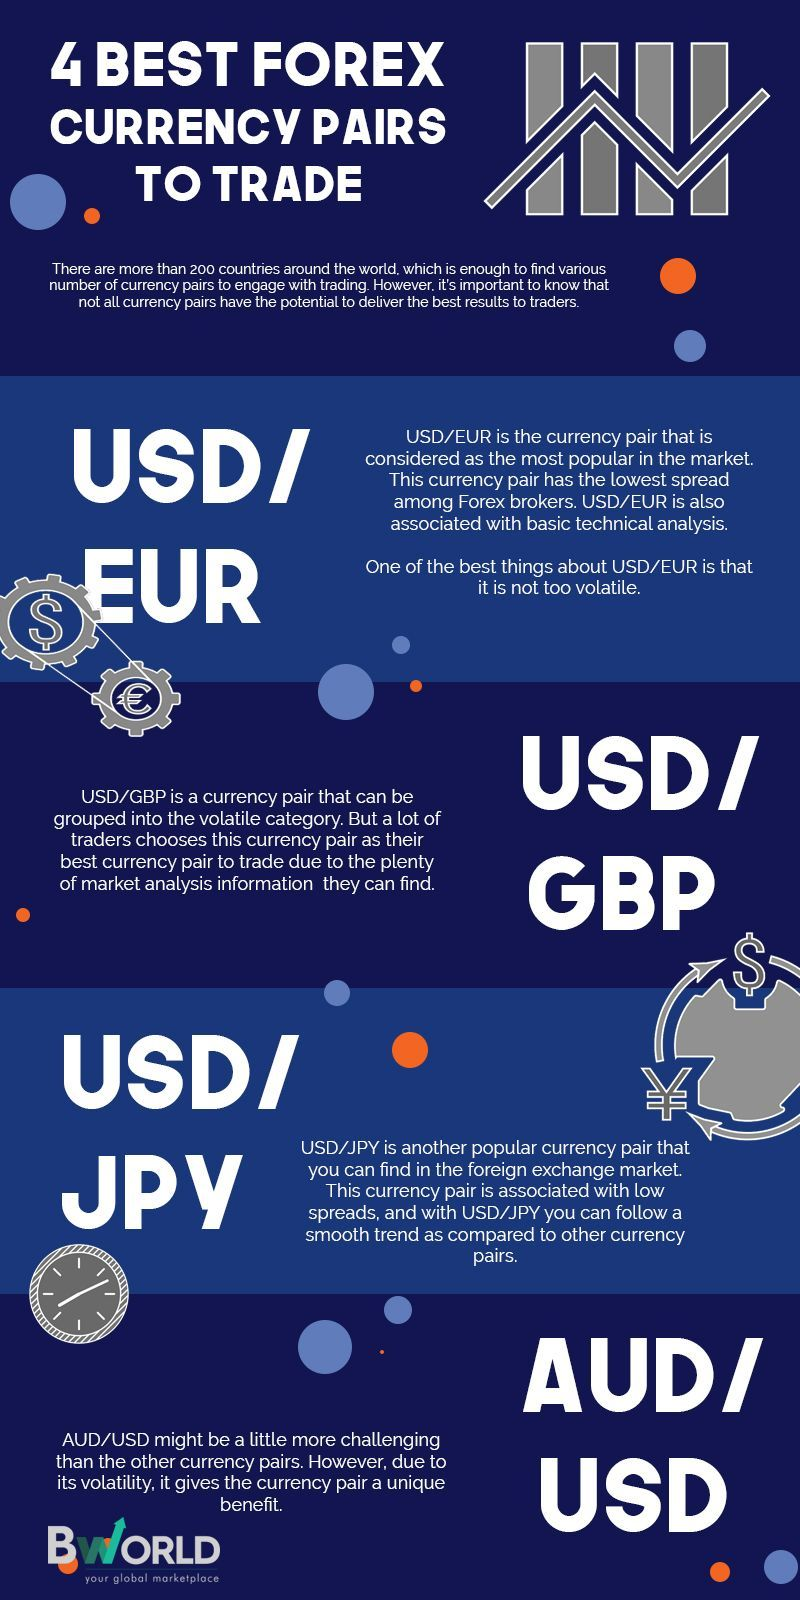 Are You Planning To Join The Trading Hype Here 4 Of Best Forex Currency Pairs Start With Bworld Infographic